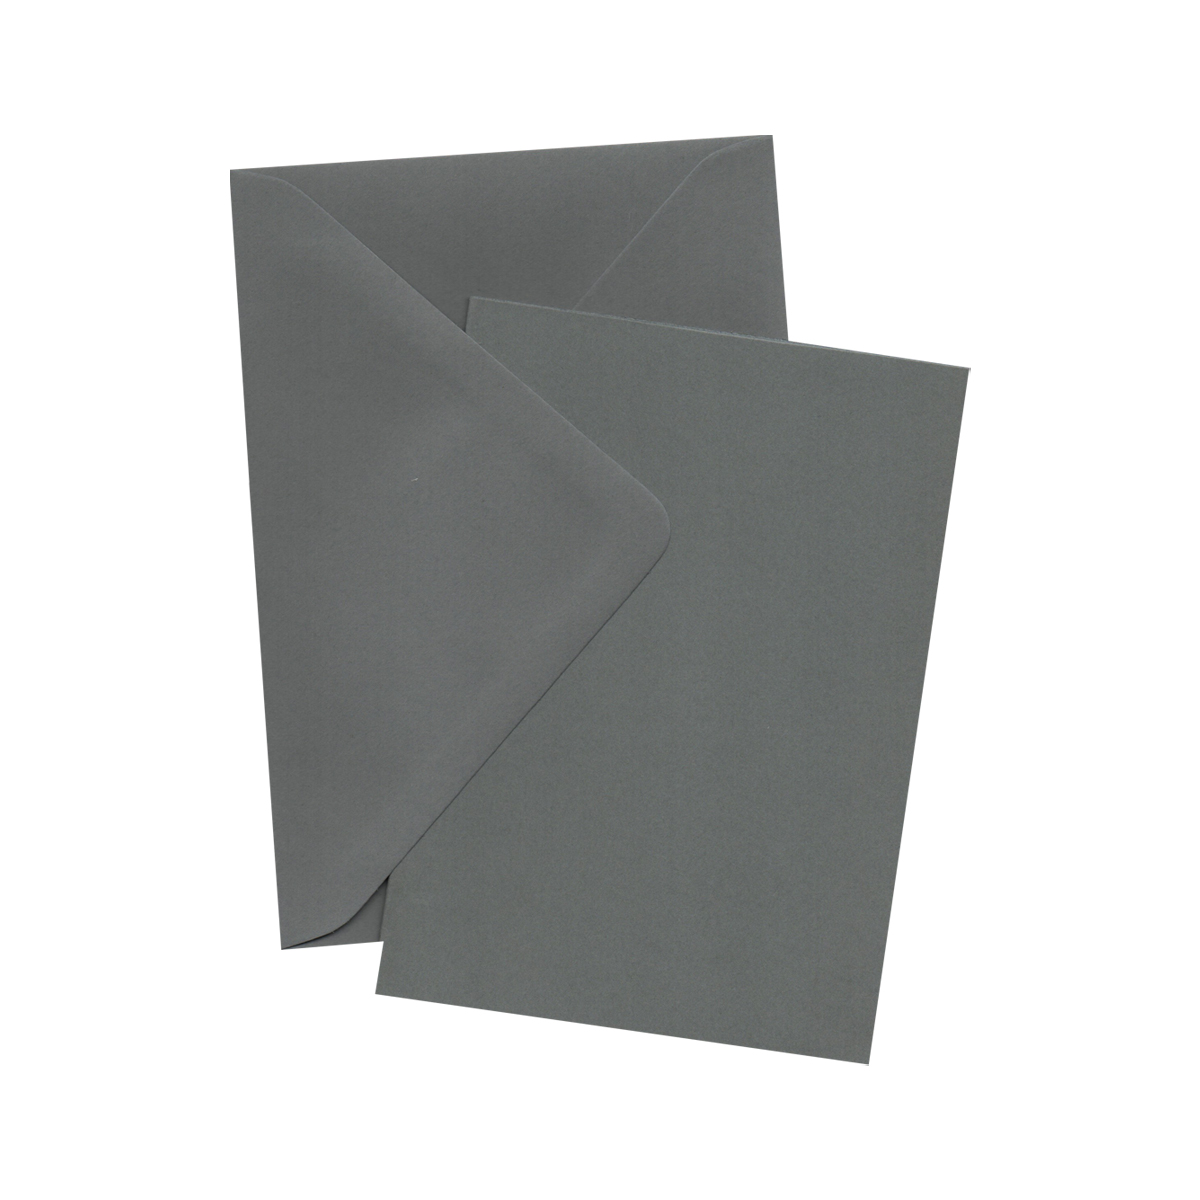 A6 WAGTAIL GREY CARD BLANKS WITH ENVELOPES (PACK OF 10)